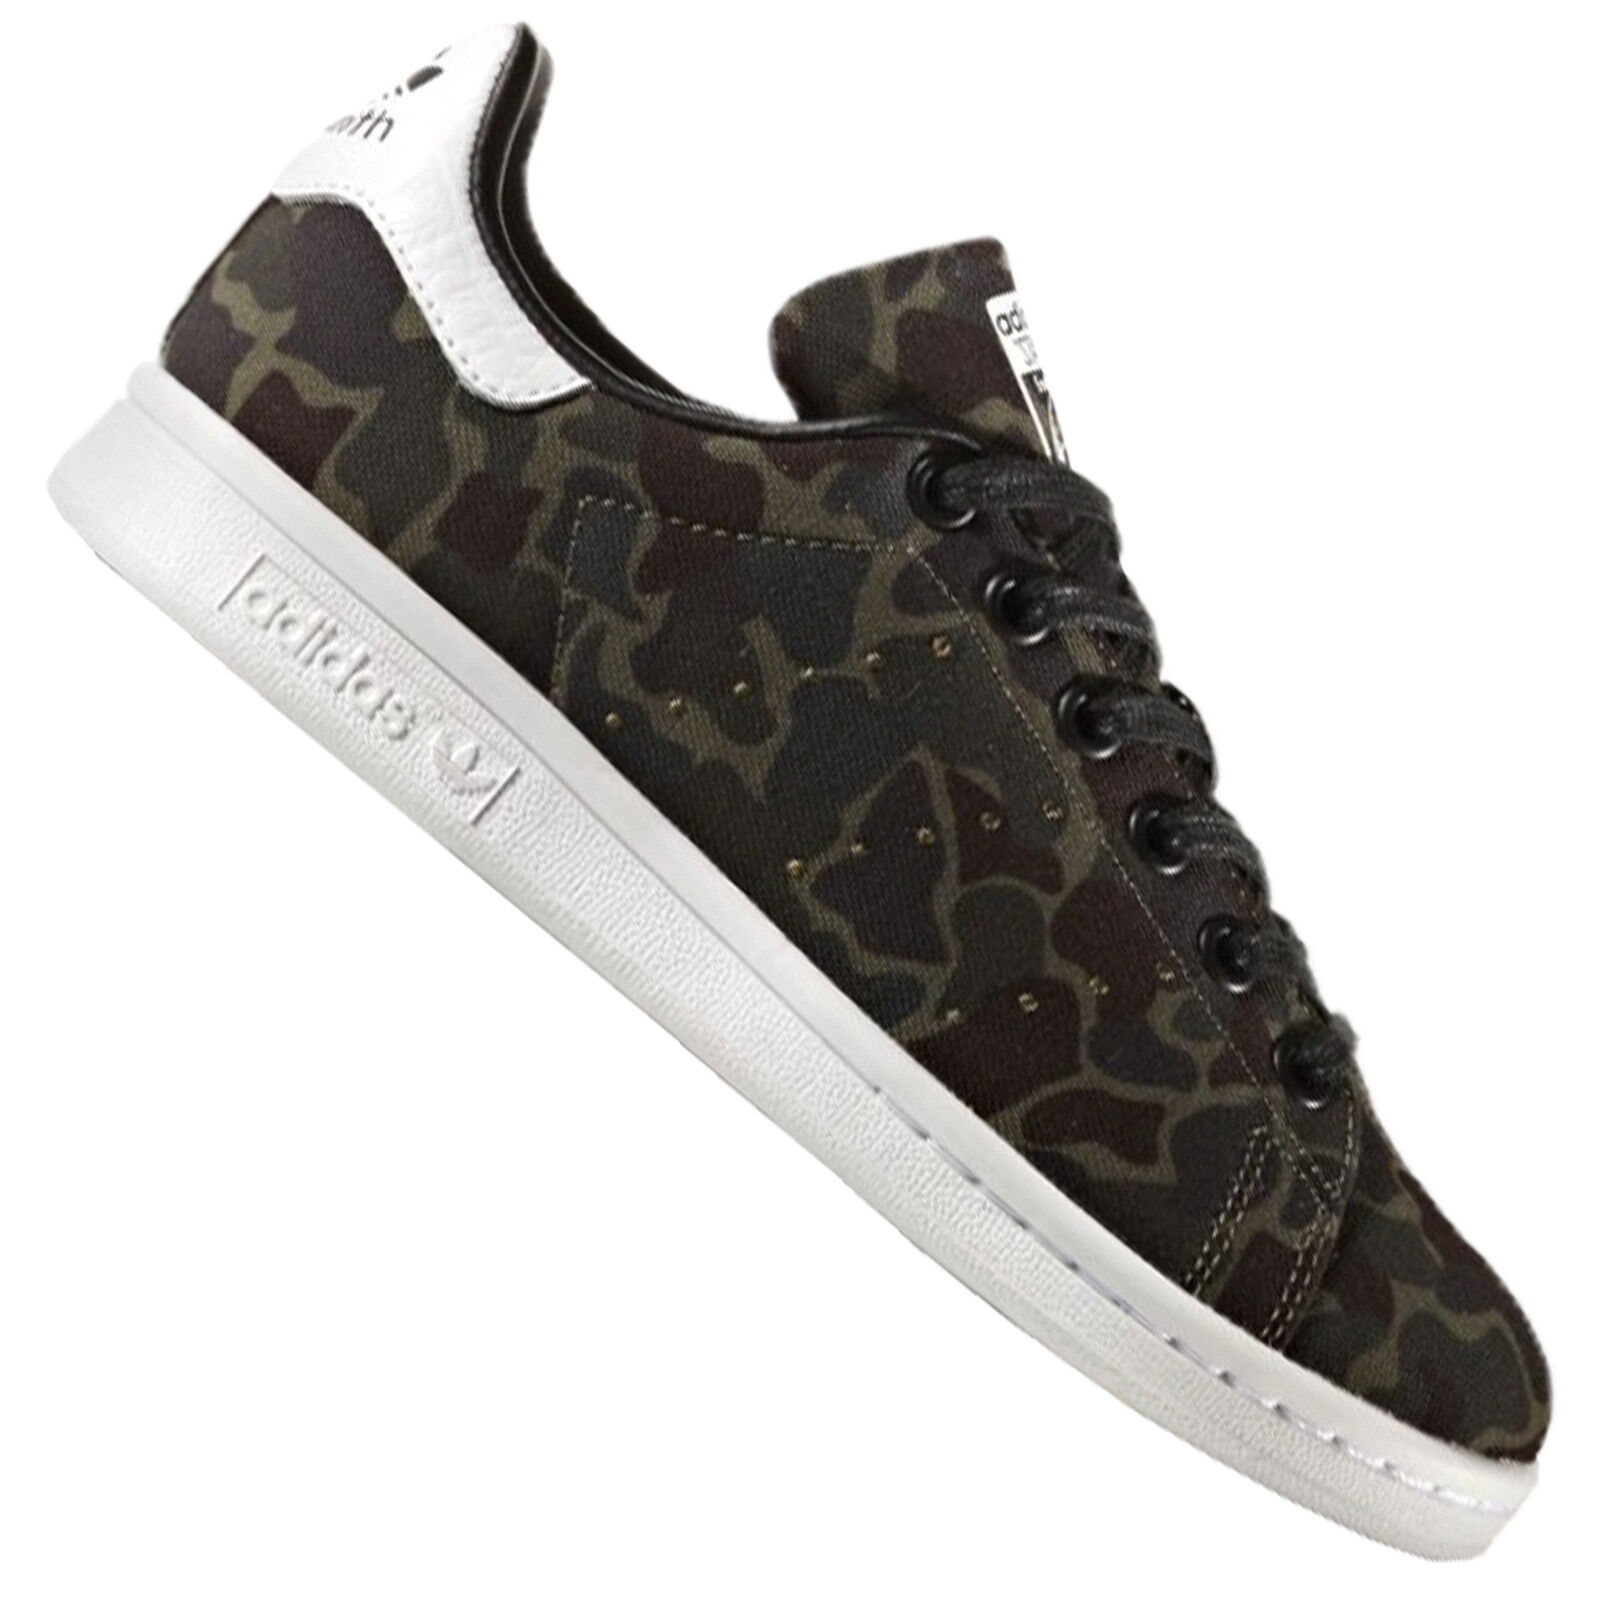 Adidas Original Stan Smith Baskets Femme Chaussures de Sport Nightcargo Camo